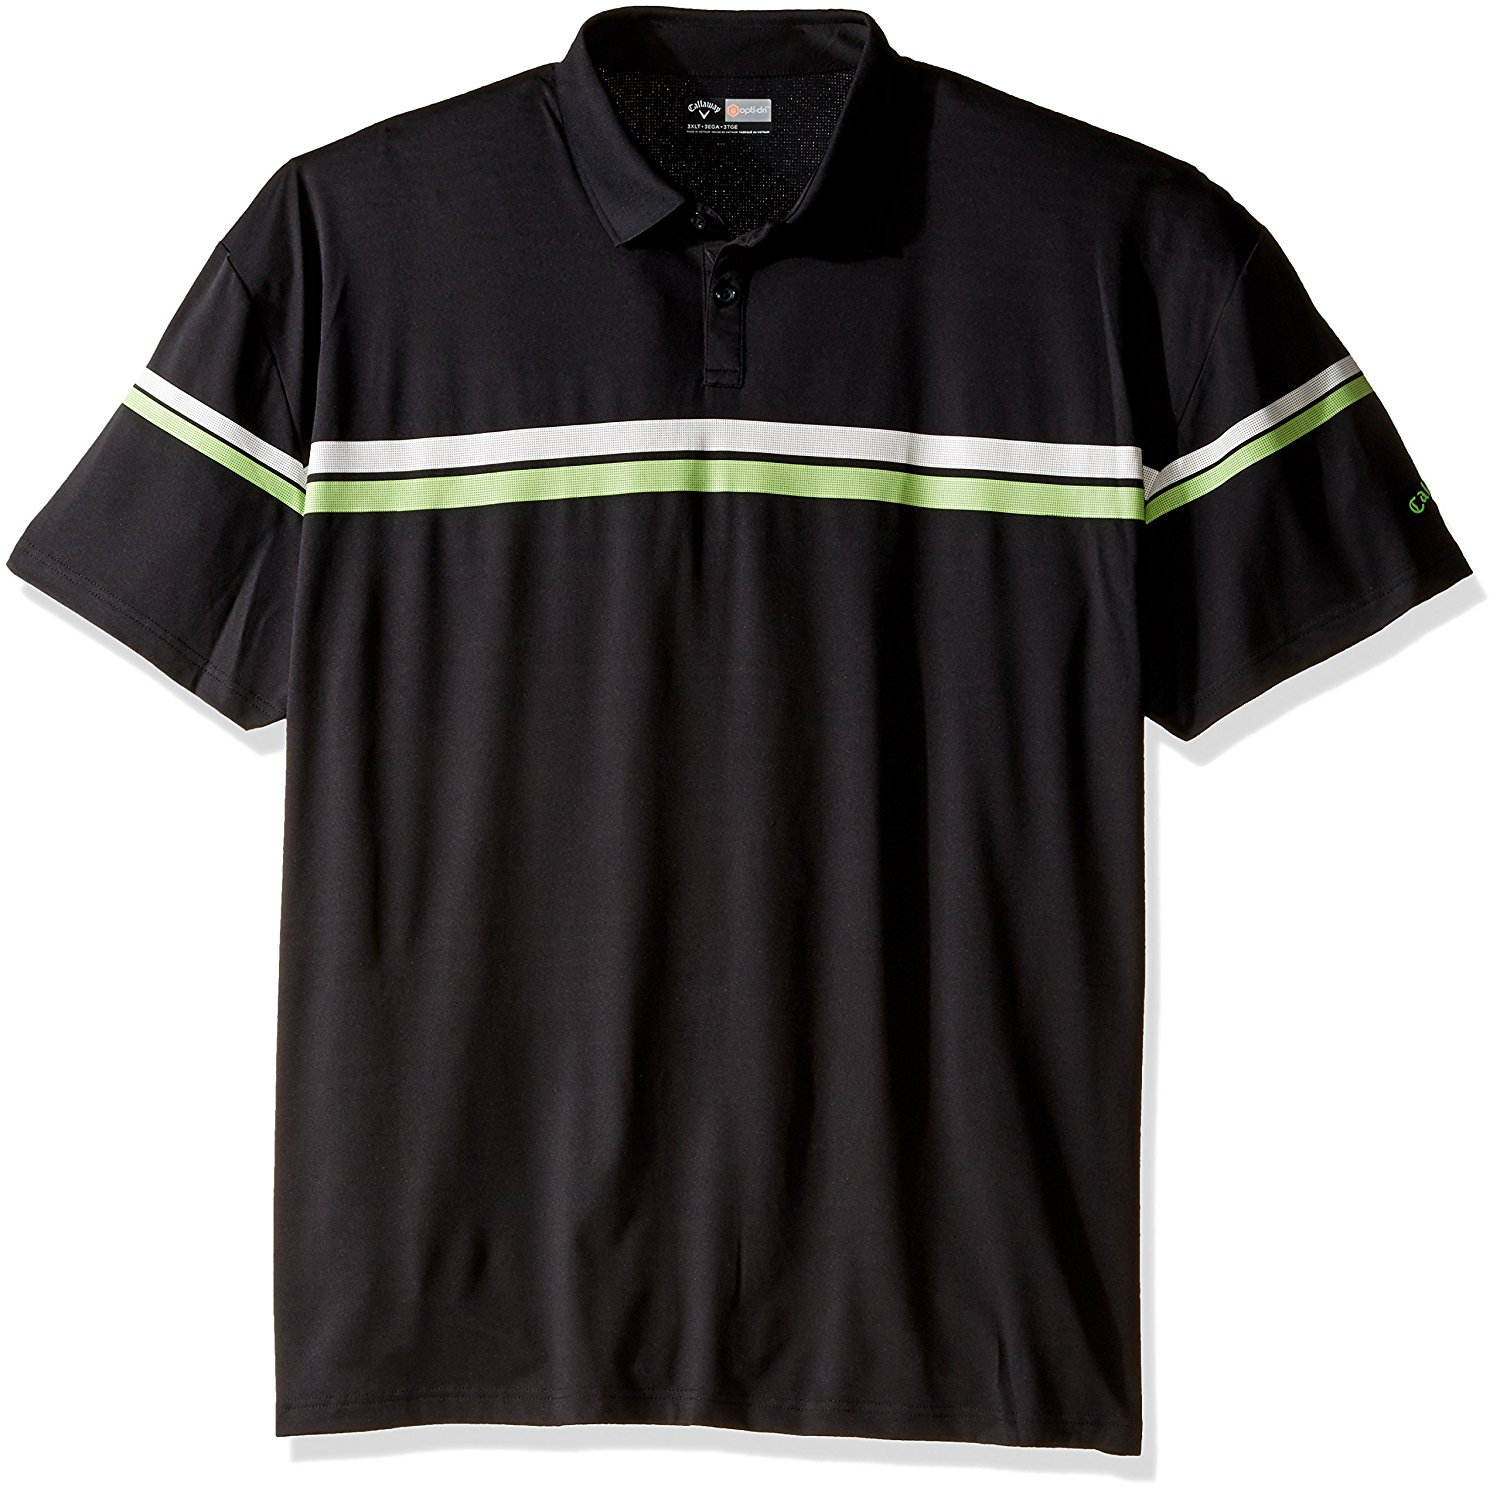 Callaway Men's Big & Tall Golf Performance Short Sleeve Athletic Printed Stripes Polo Shirt